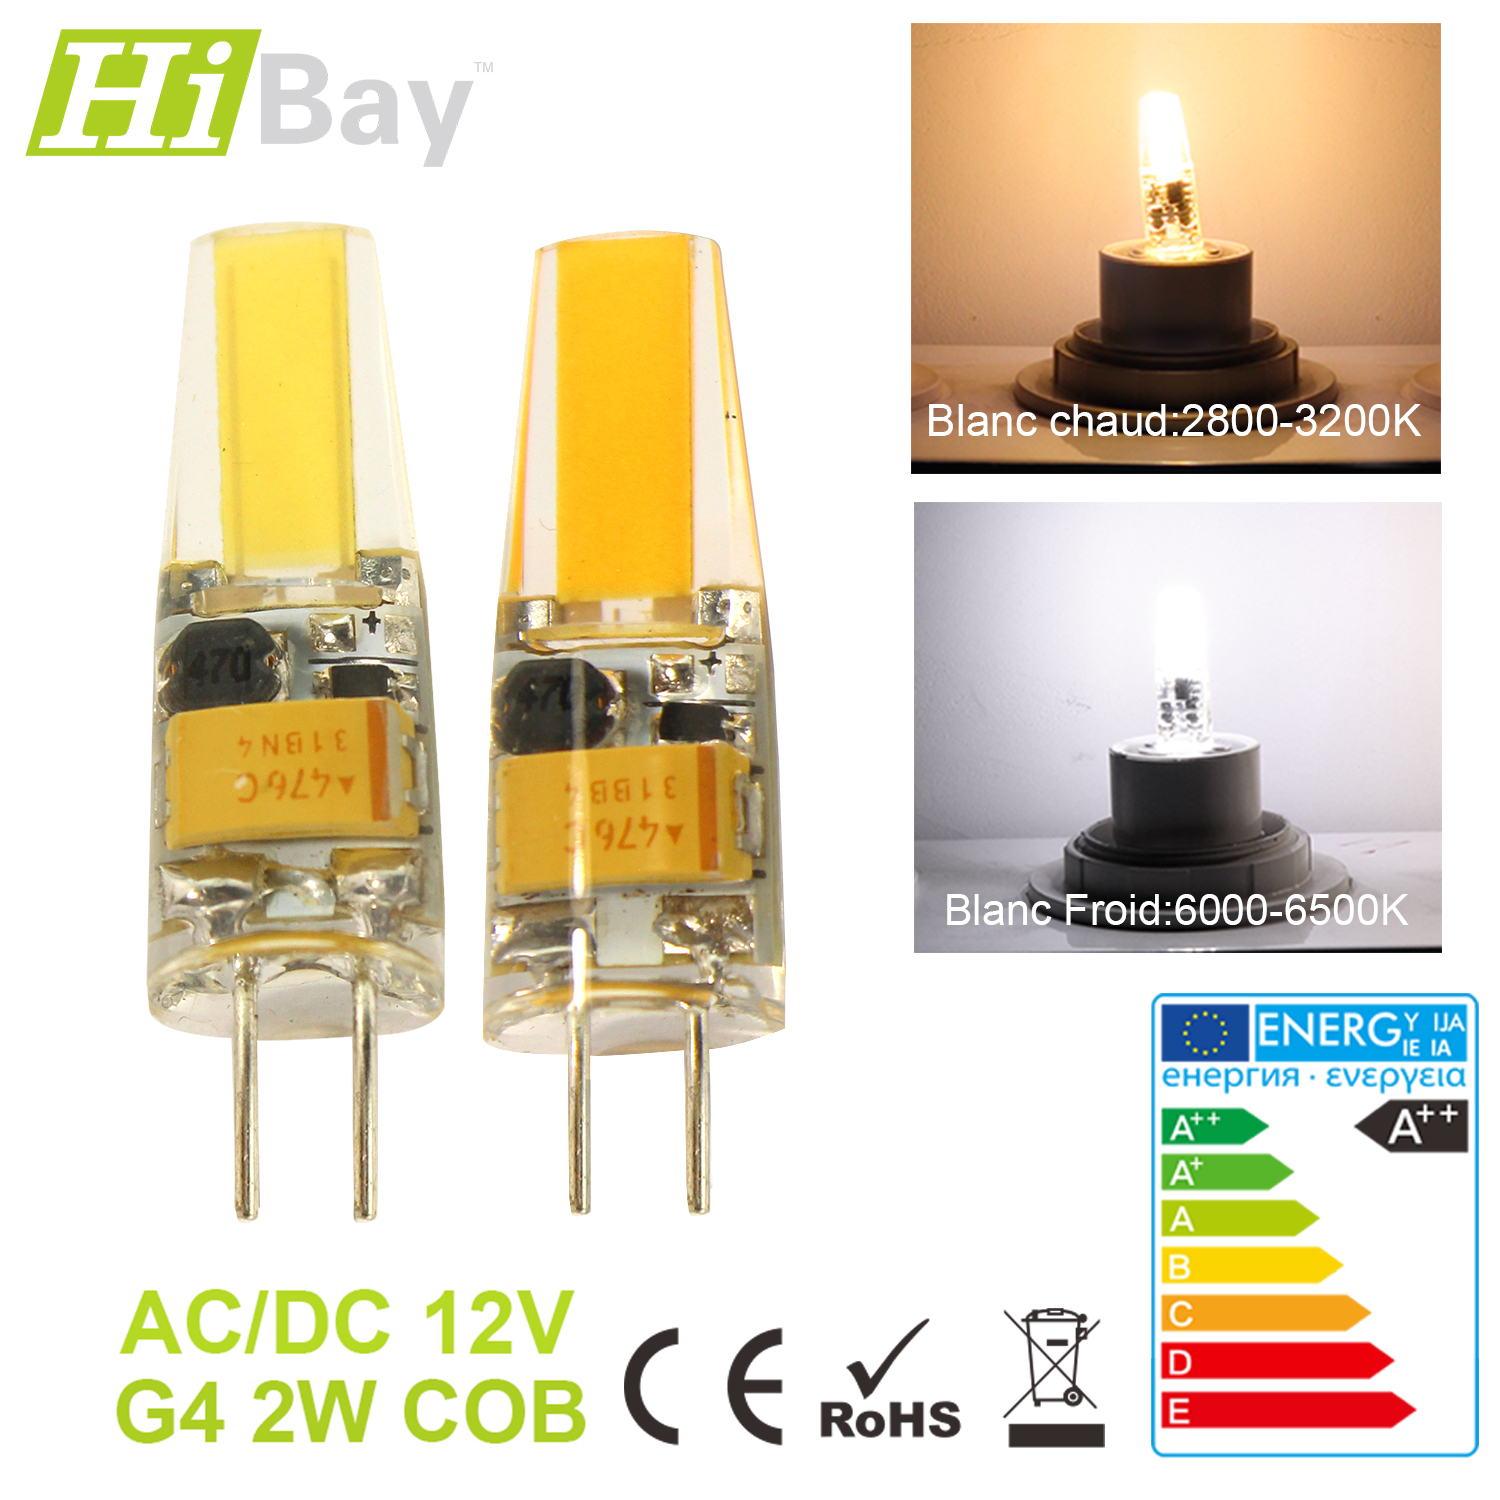 g4 g9 e14 led ampoule ma s capsule lampe cob smd lumi re bulbe blanc chaud froid ebay. Black Bedroom Furniture Sets. Home Design Ideas